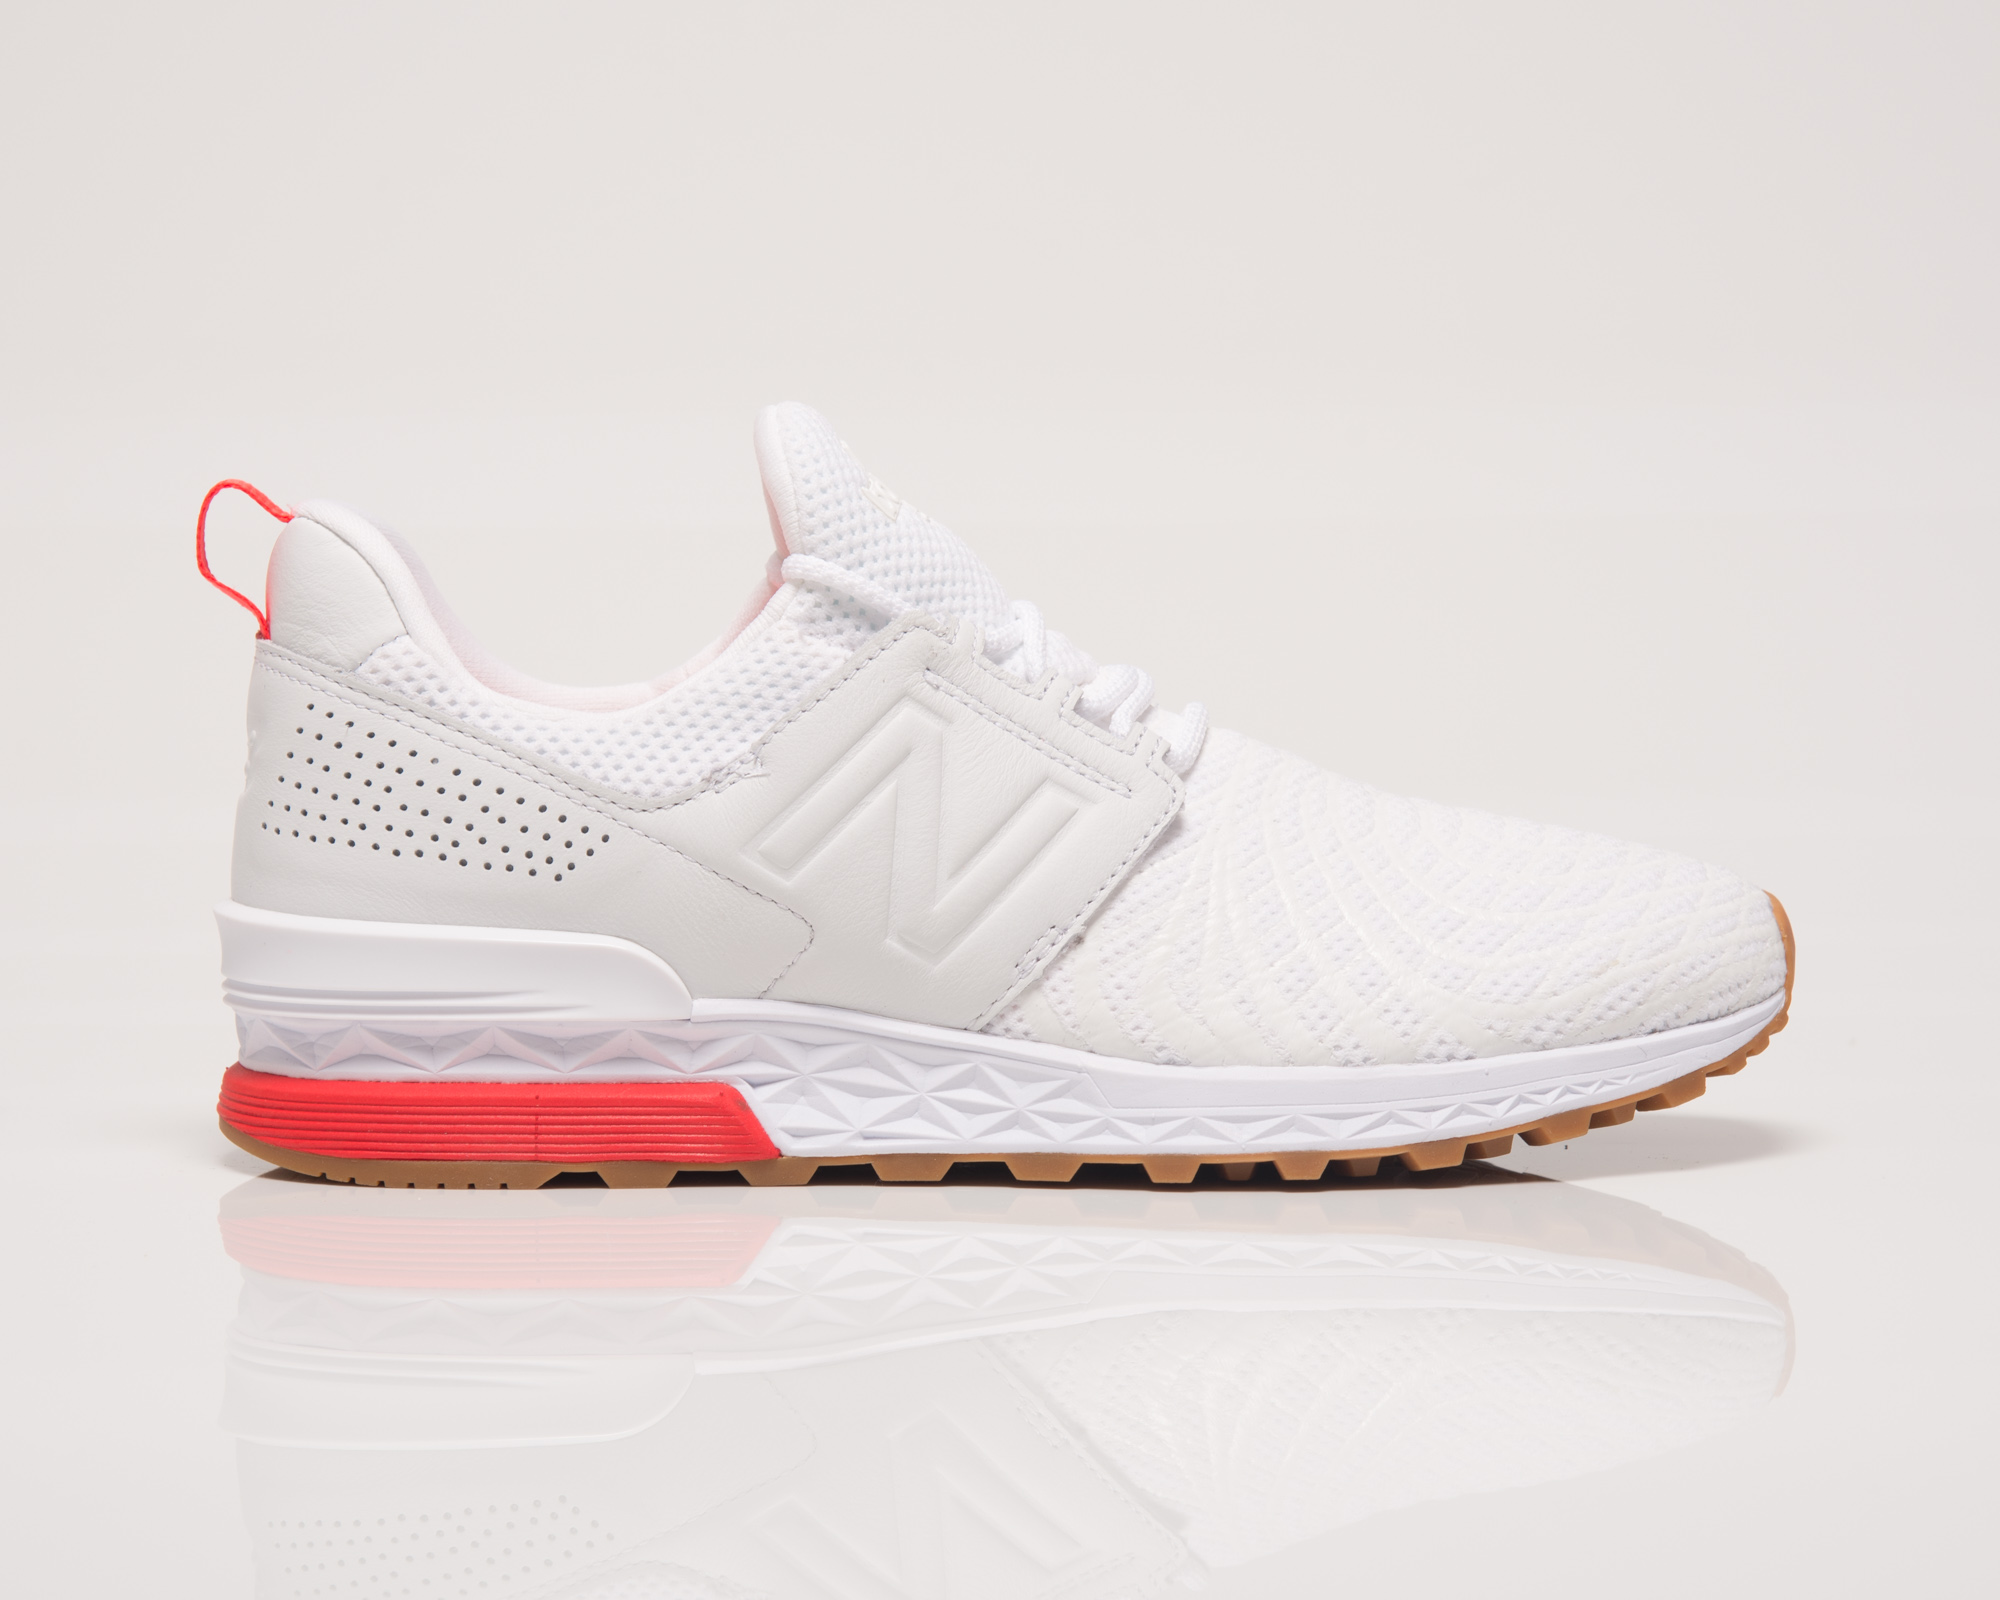 reputable site 4d86c 4be8b New Balance 574 Sport - Shoes Casual - Sporting goods | sil.lt